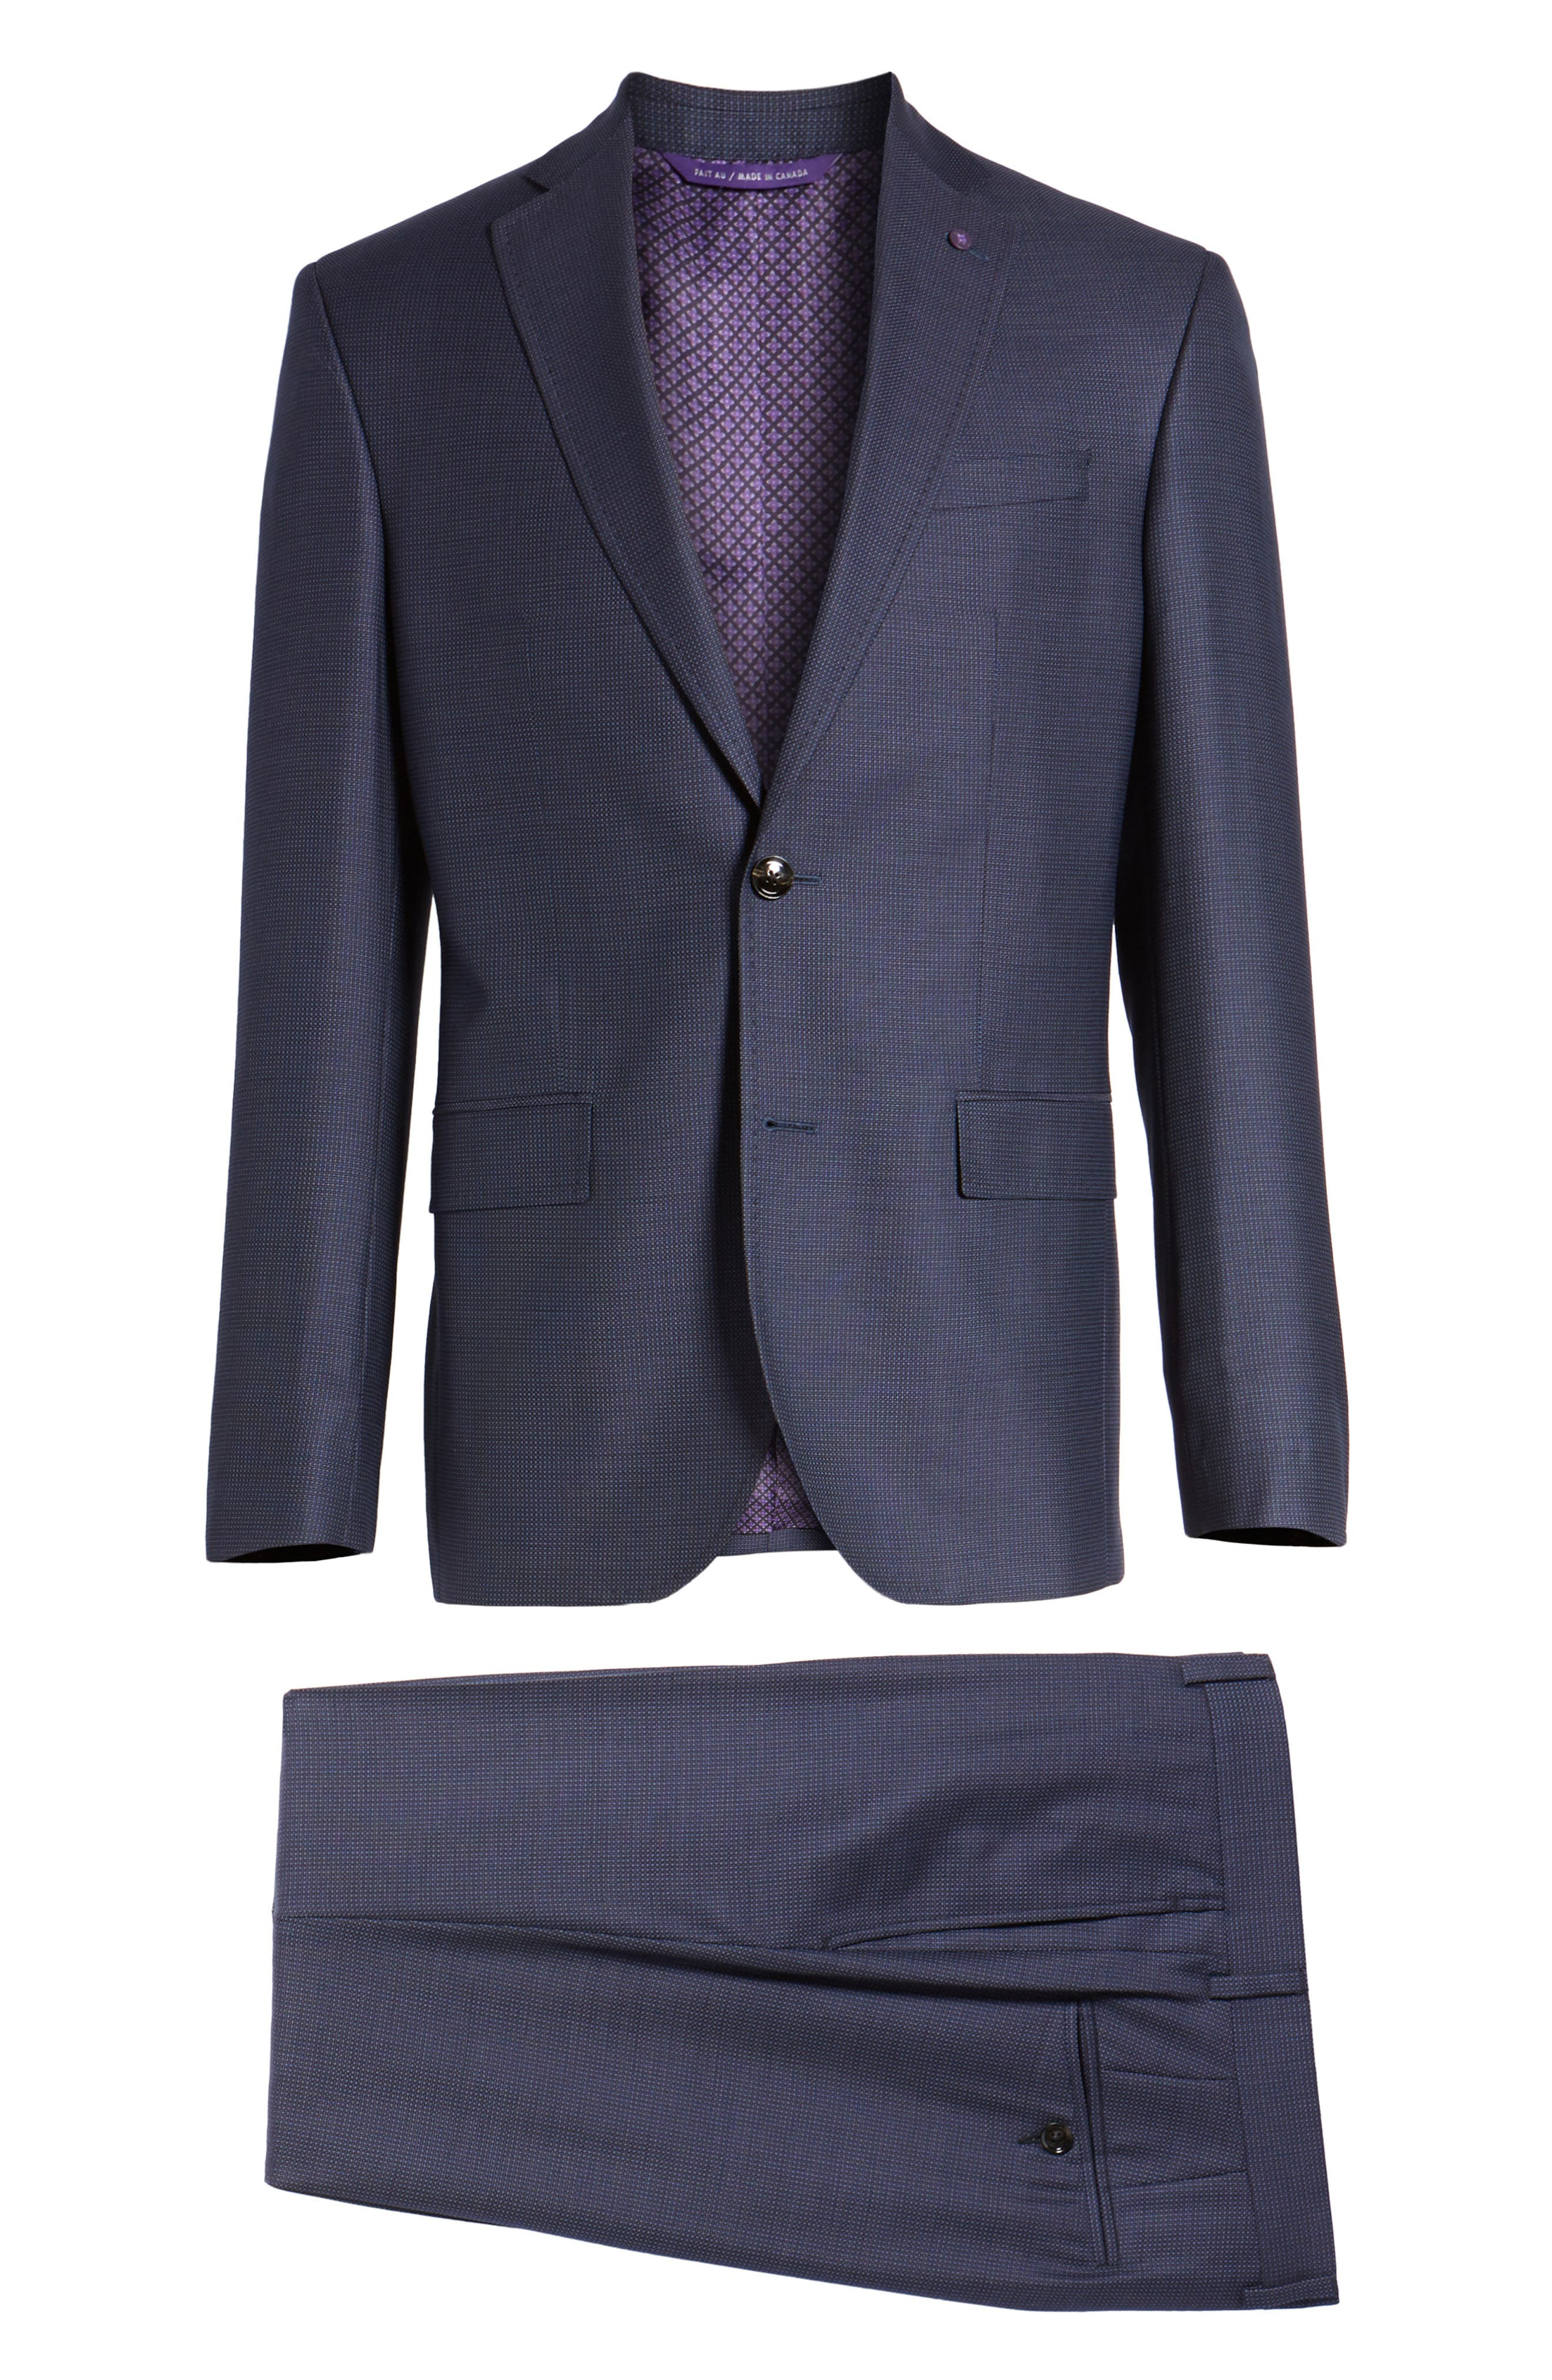 Roger Extra Slim Fit Solid Wool Suit,                             Alternate thumbnail 8, color,                             410